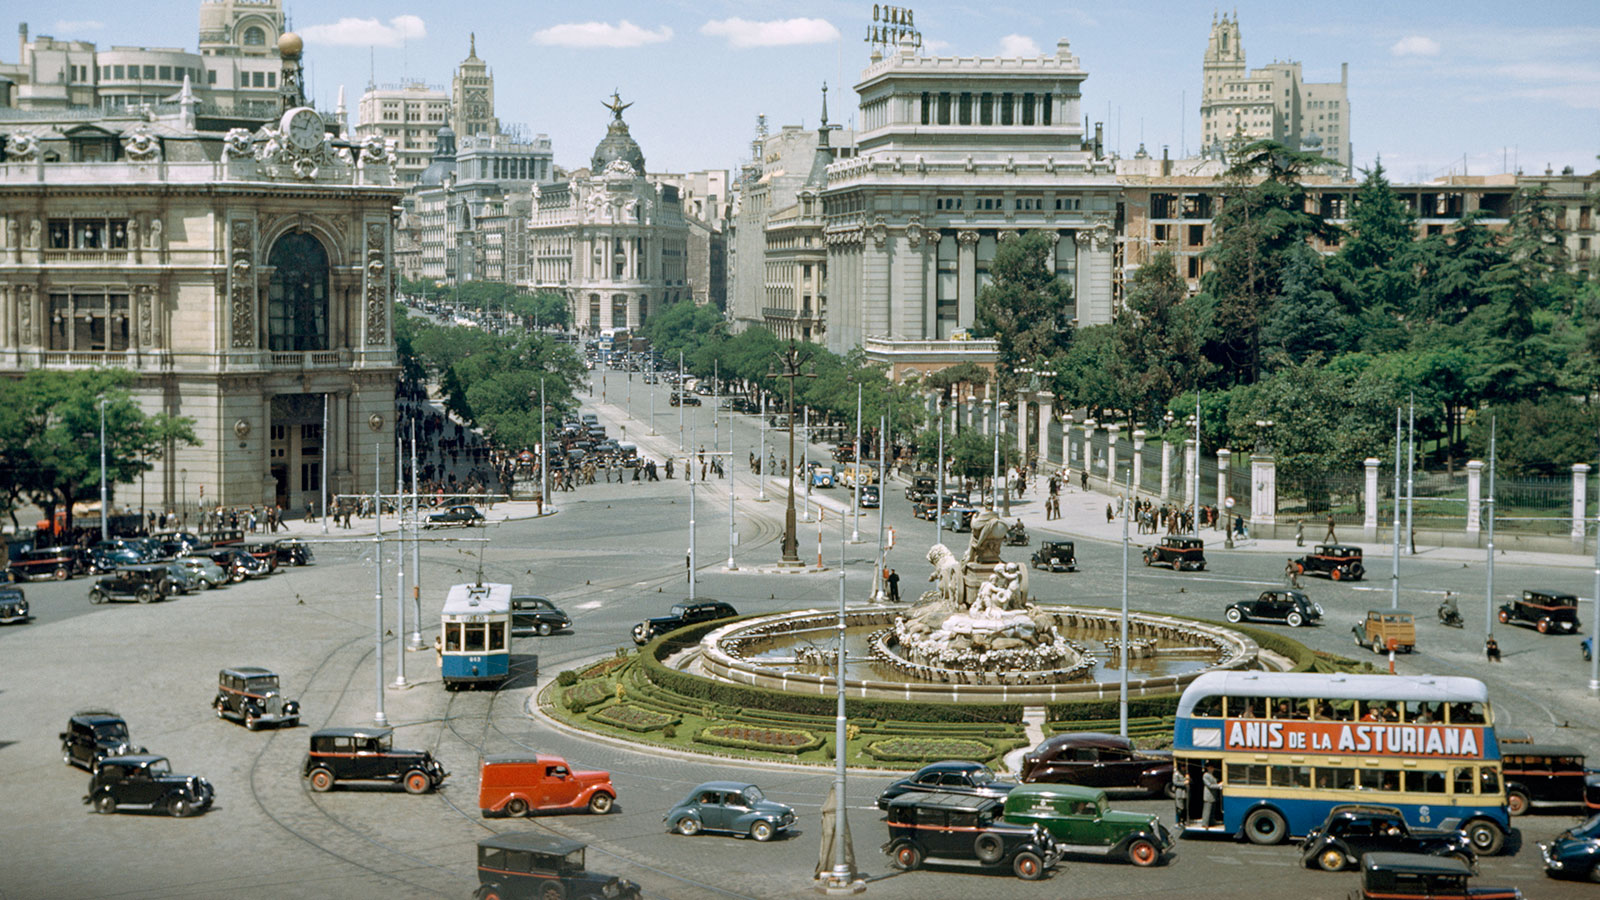 Traffic swirls around the Cybele's Fountain in central Madrid, 1950.